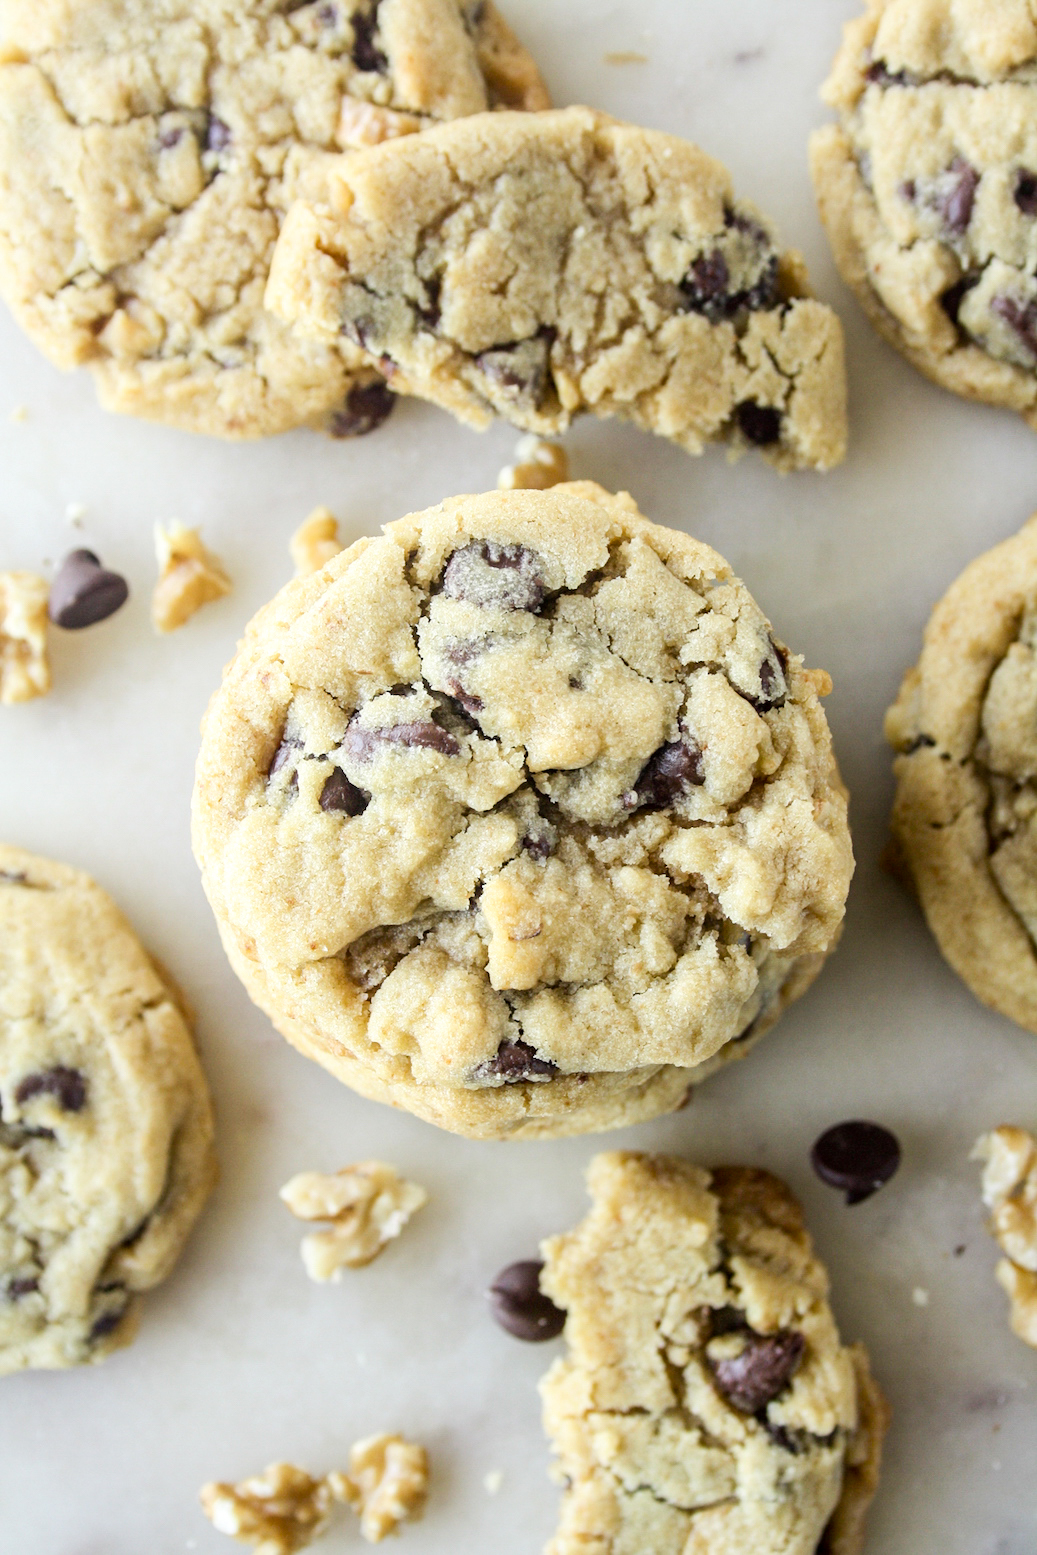 Chewy chocolate chip cookies with browned butter and walnuts